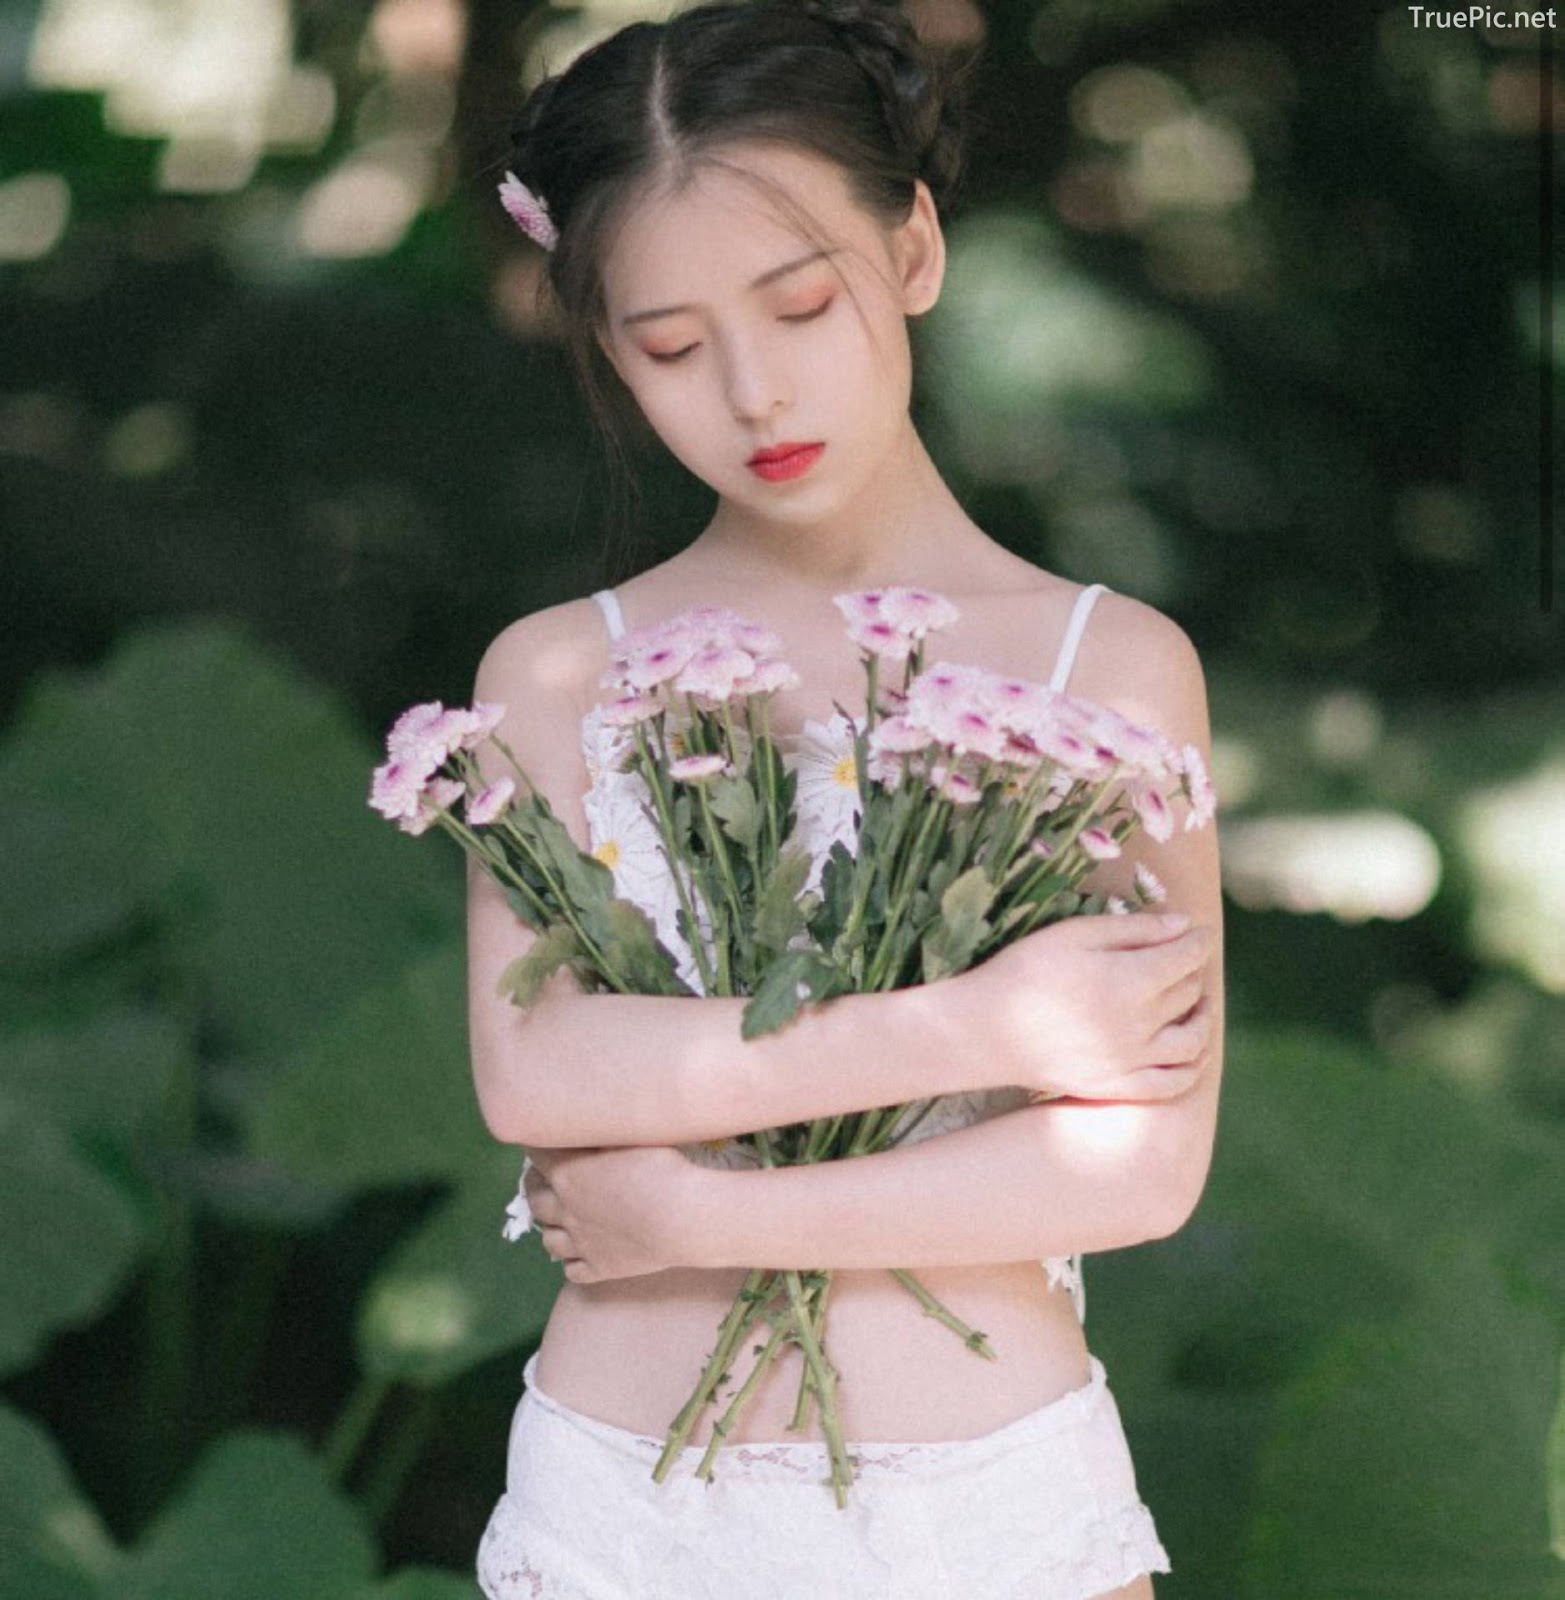 Chinese model - Welcome sunshine with fairy of flowers - Picture 6